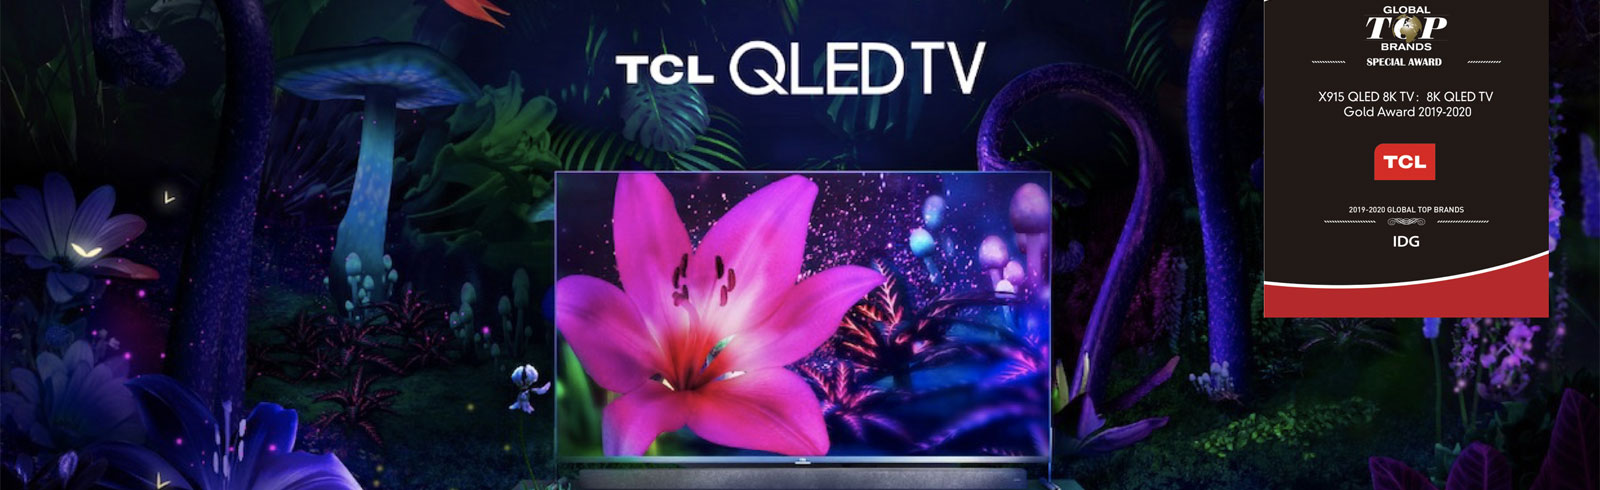 TCL 65X915 and 75X915 win the 8K QLED TV Gold Award at CES 2020